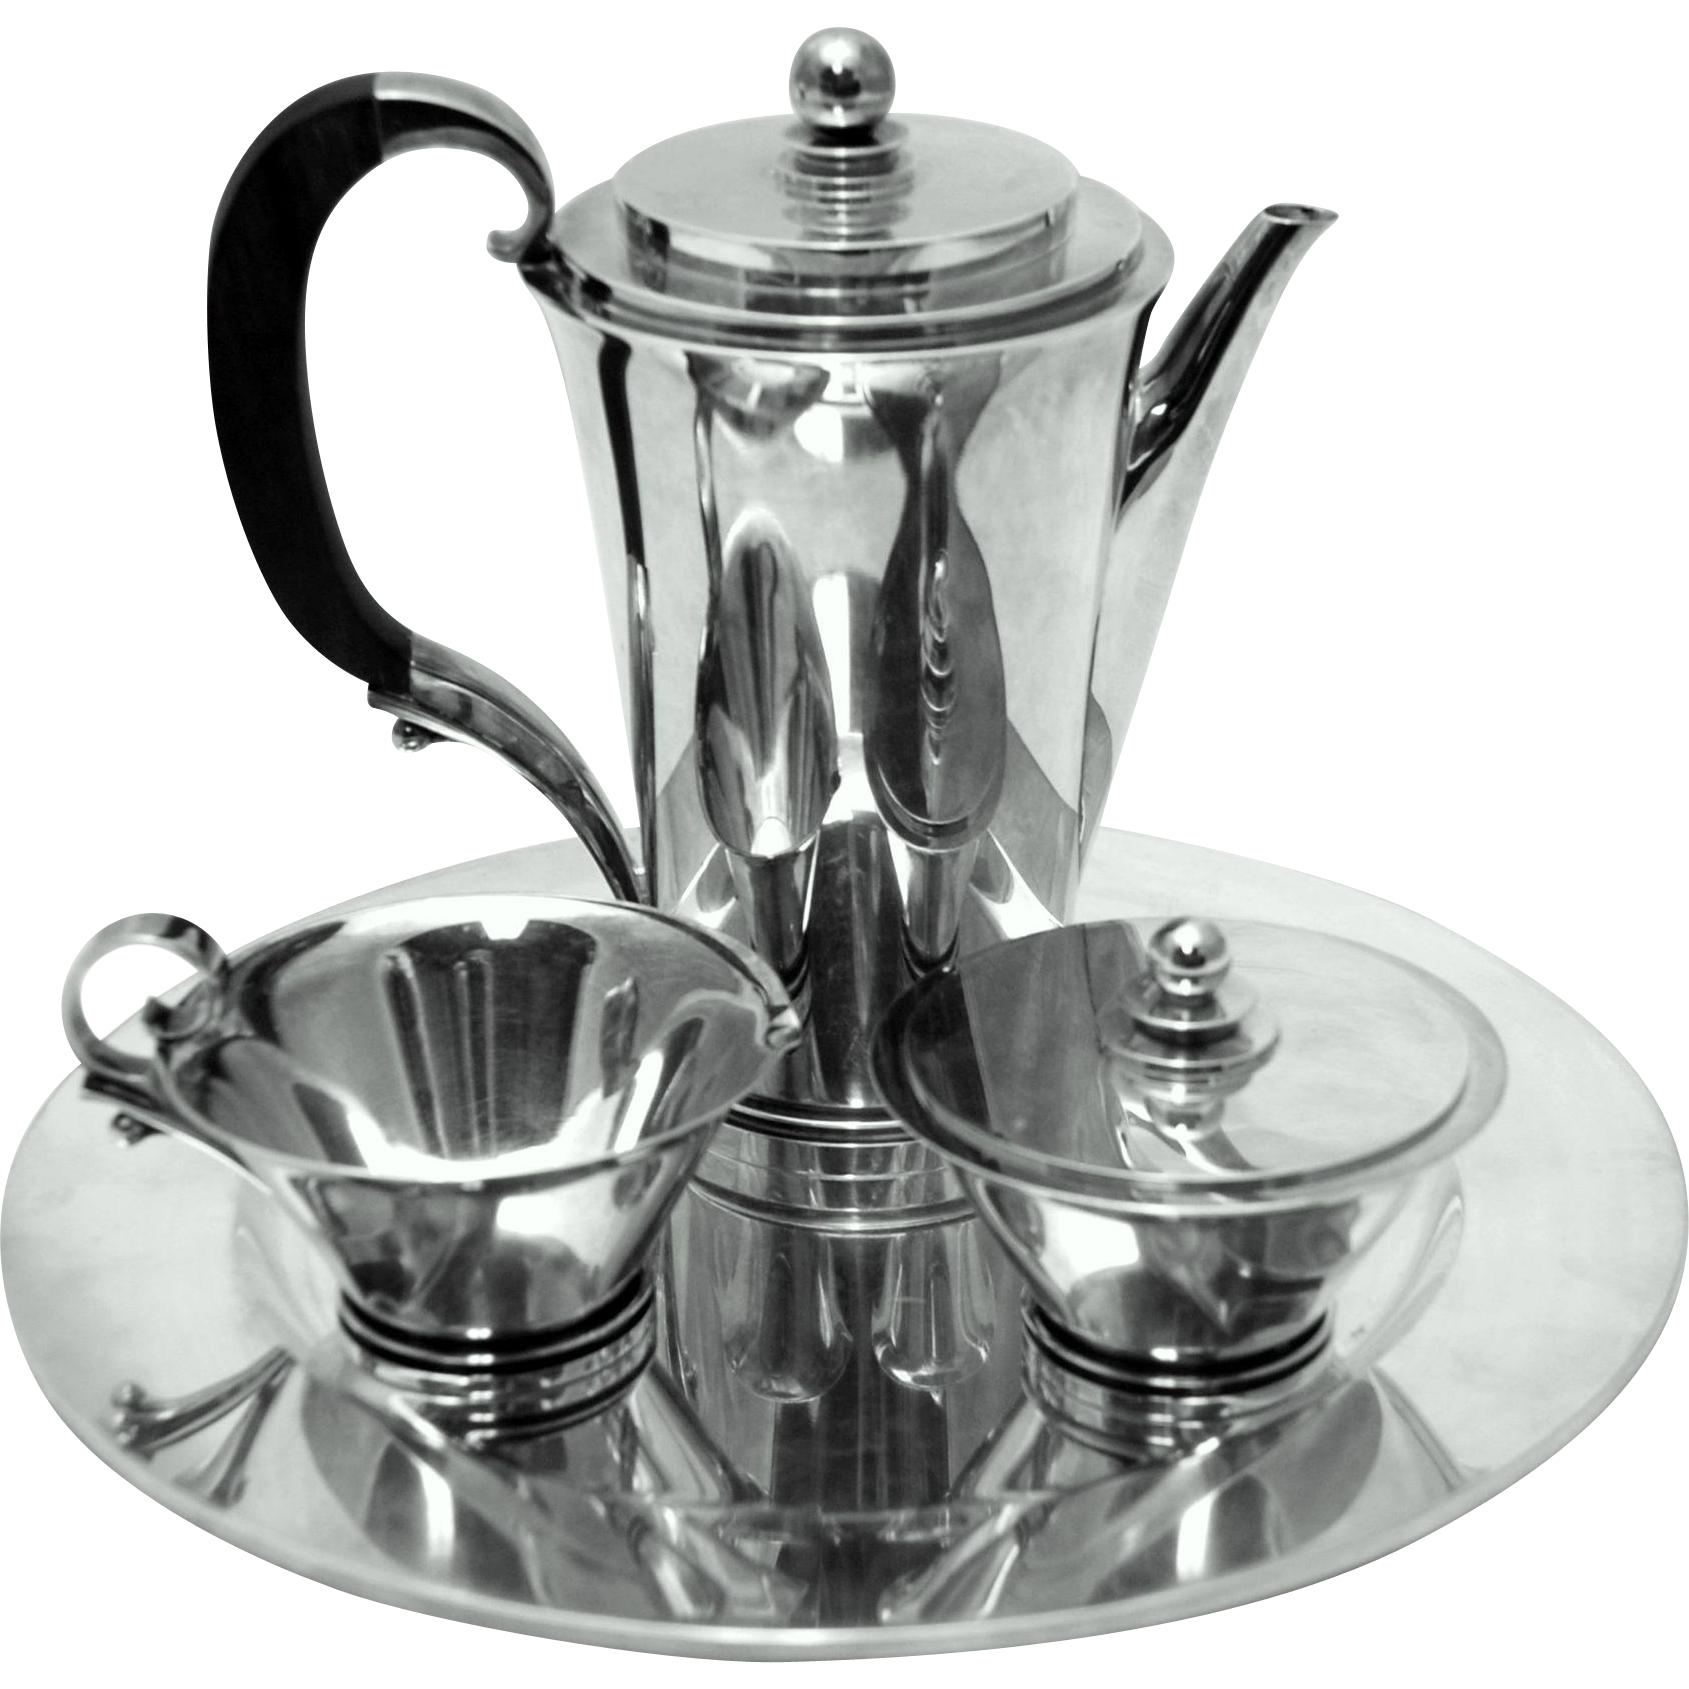 georg jensen sterling silver pyramid coffee set 600a from classicsilver on ruby lane. Black Bedroom Furniture Sets. Home Design Ideas